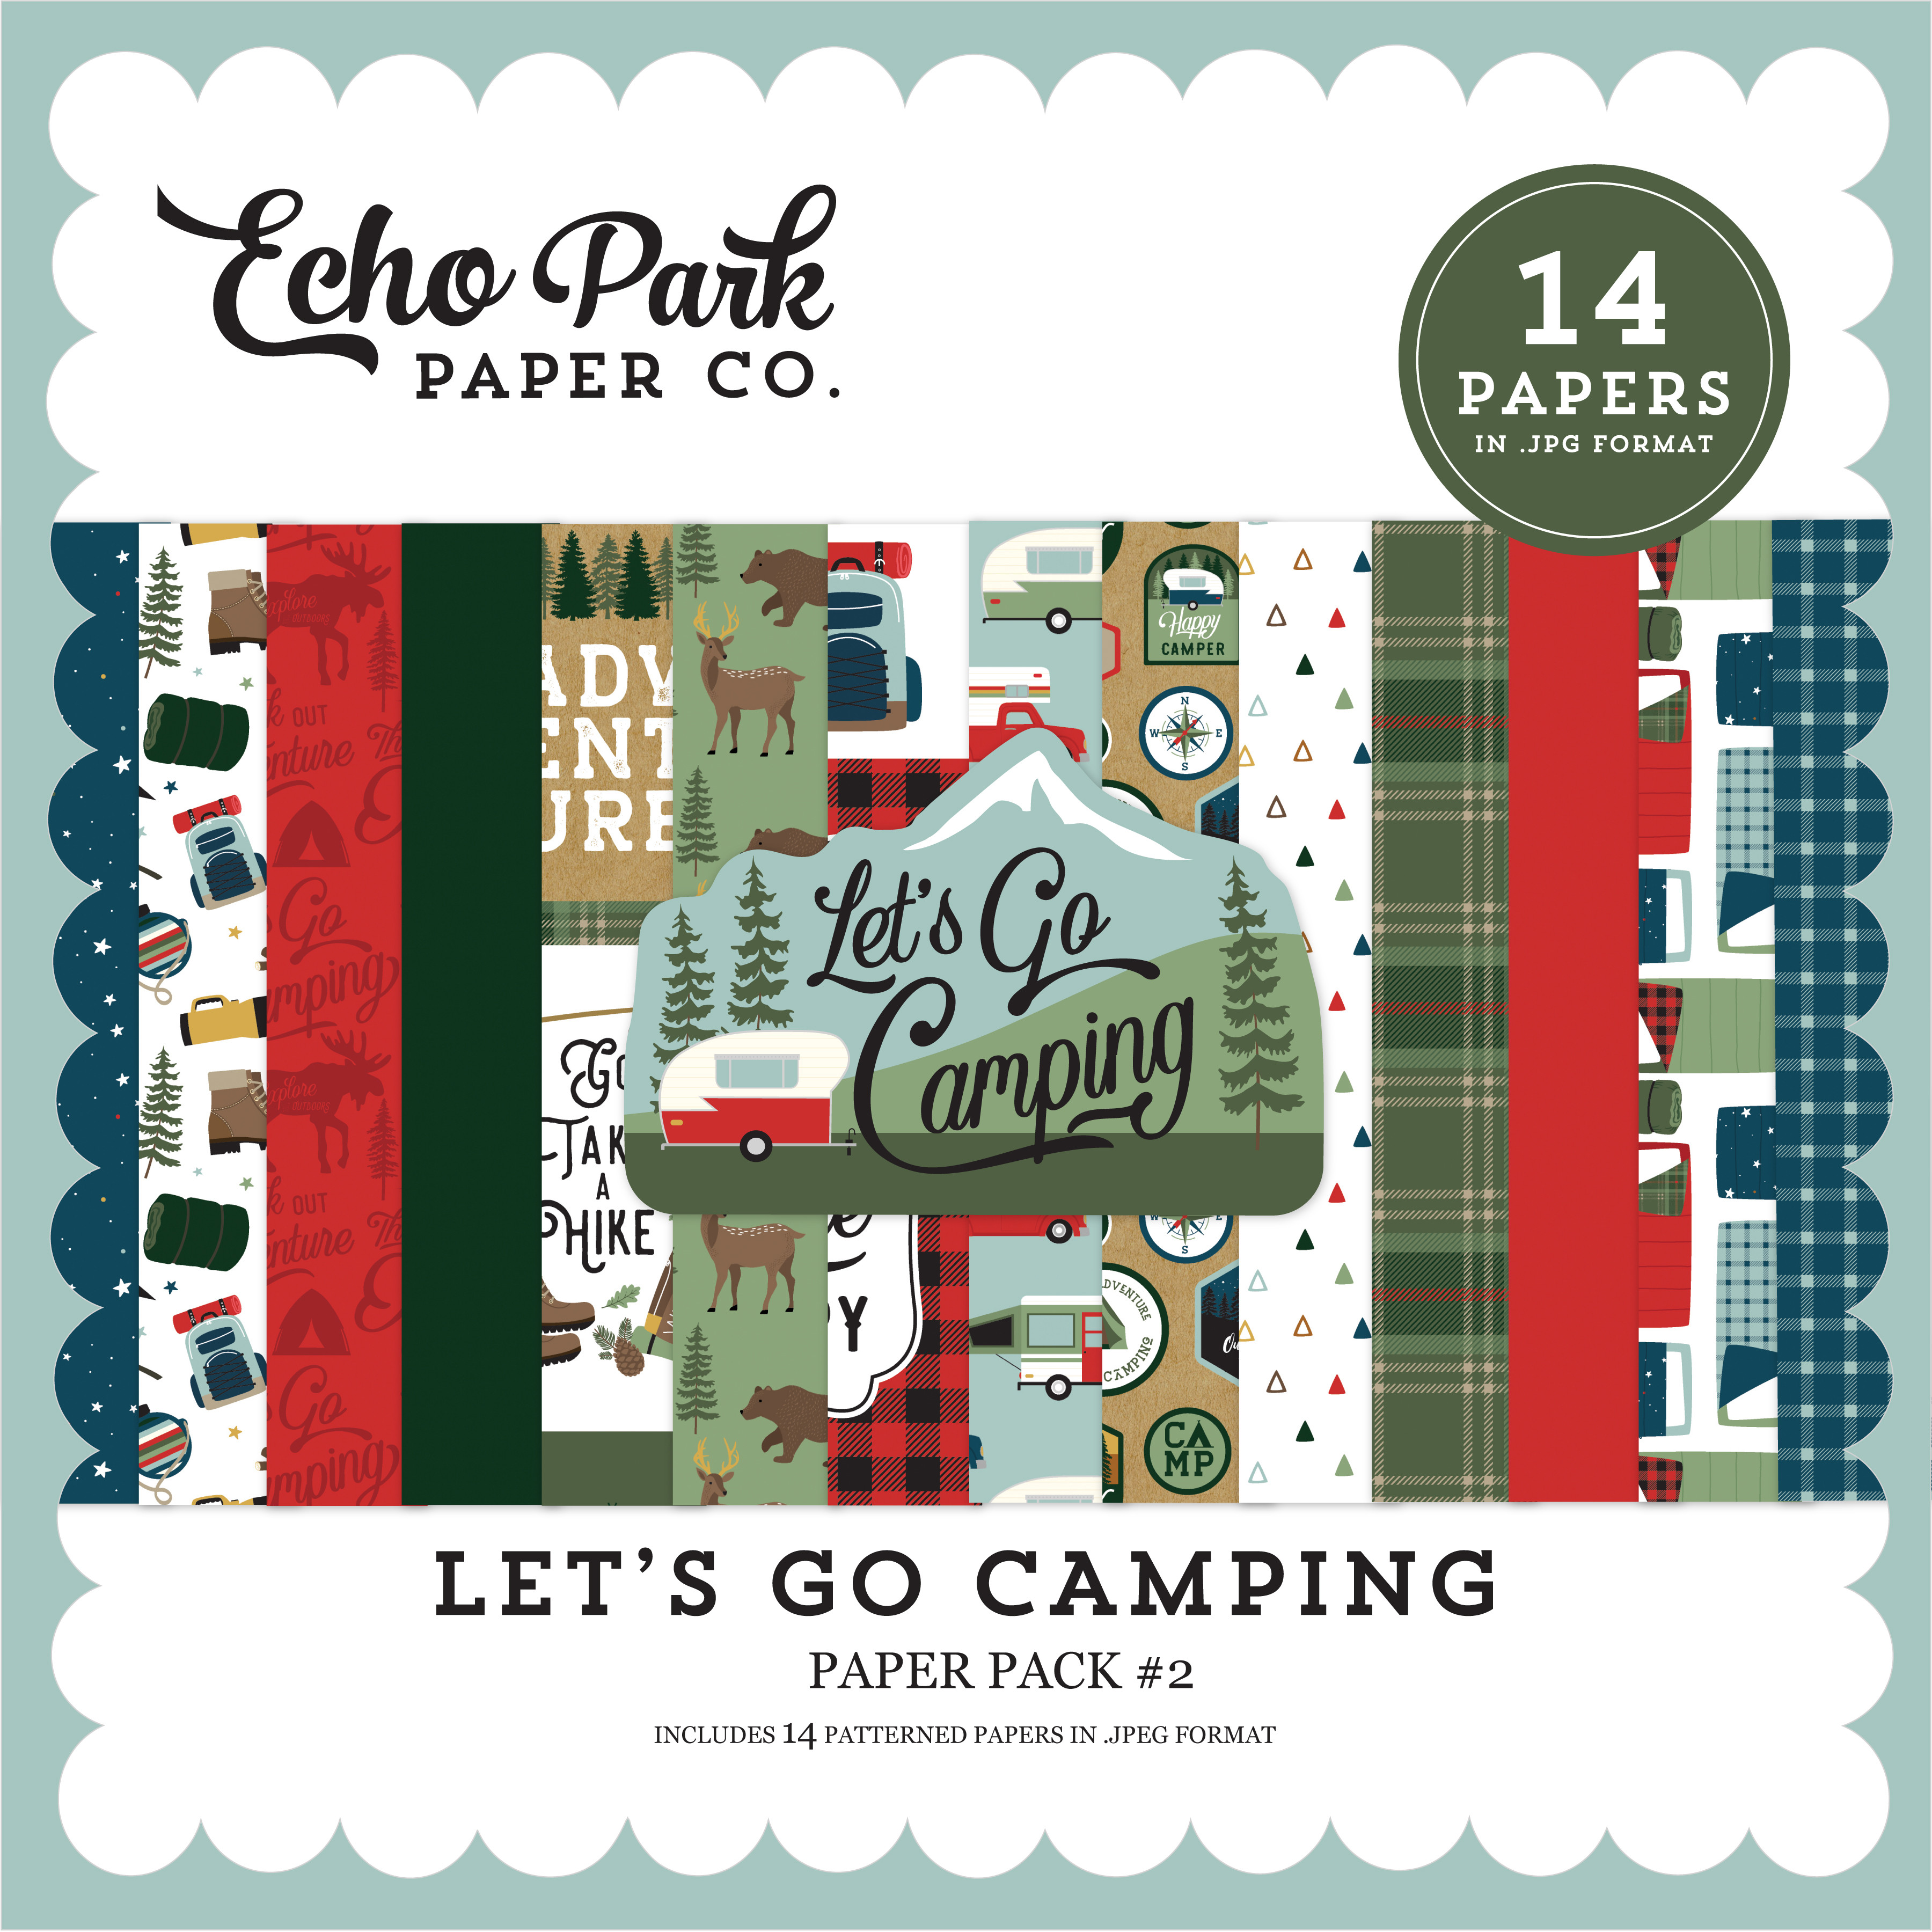 Let's Go Camping Paper Pack #2